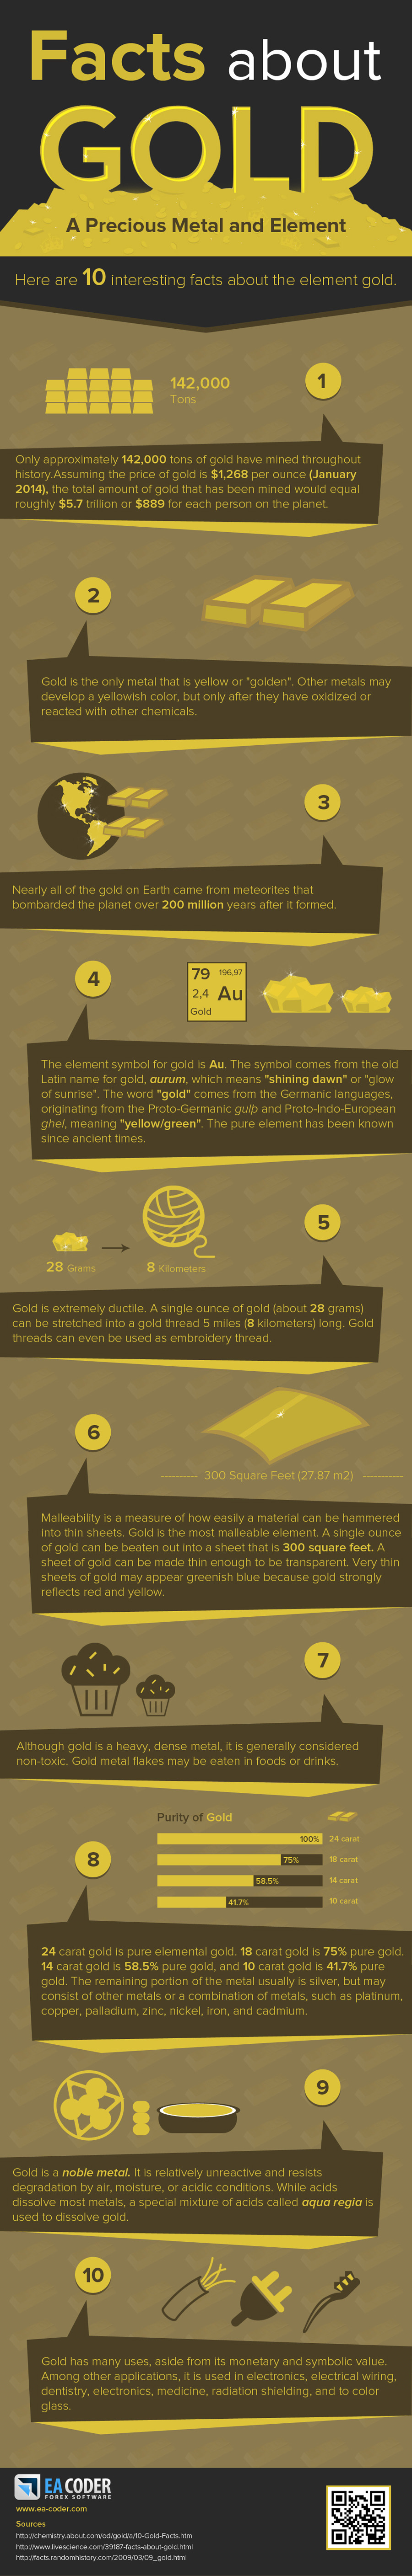 10 Golden Facts On One Of The Most Valuable 'Elements' On Earth